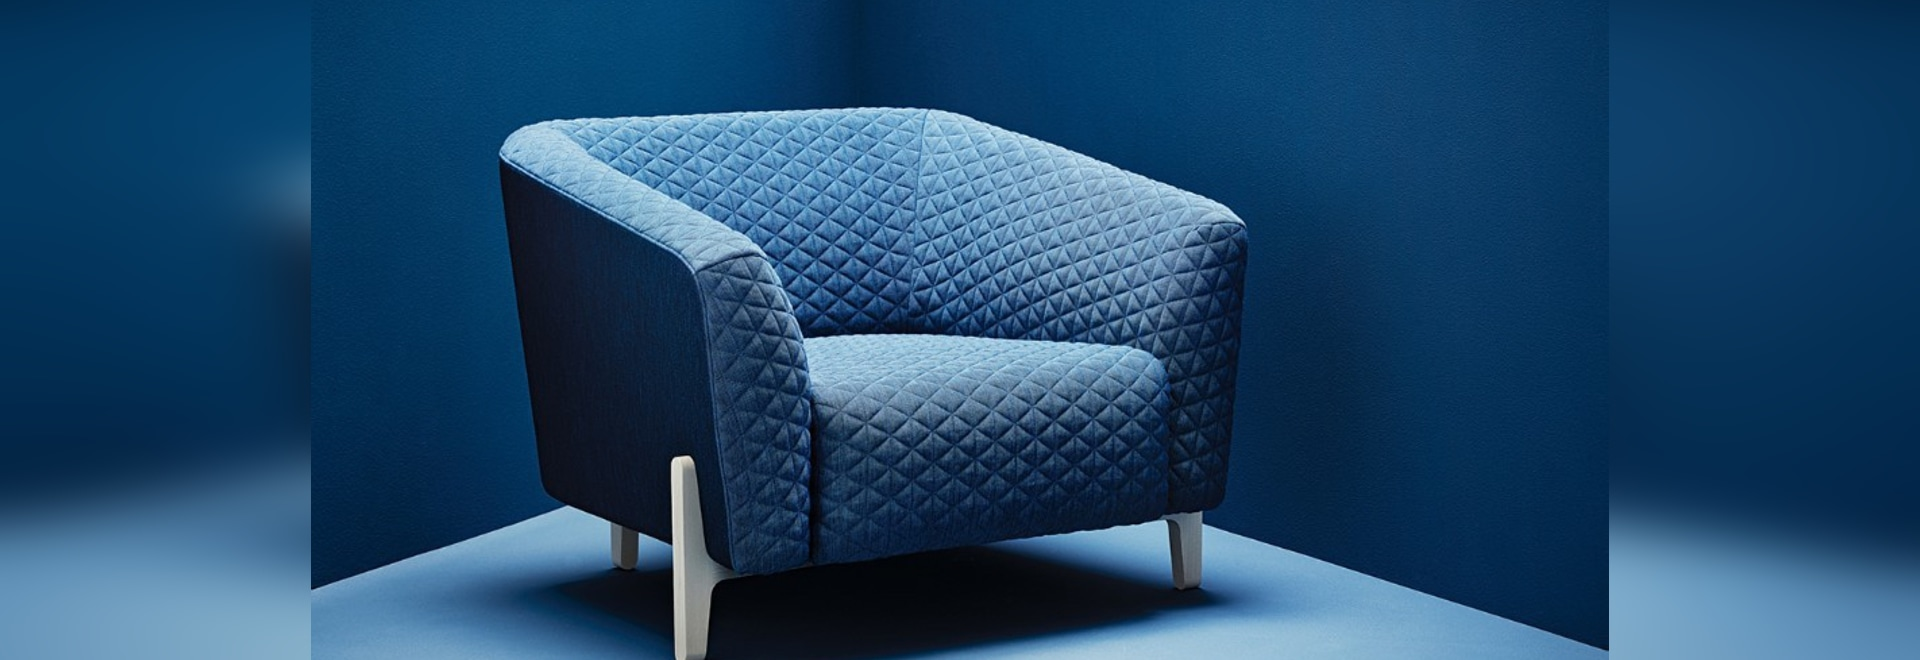 Quilted textiles cover modern seatings